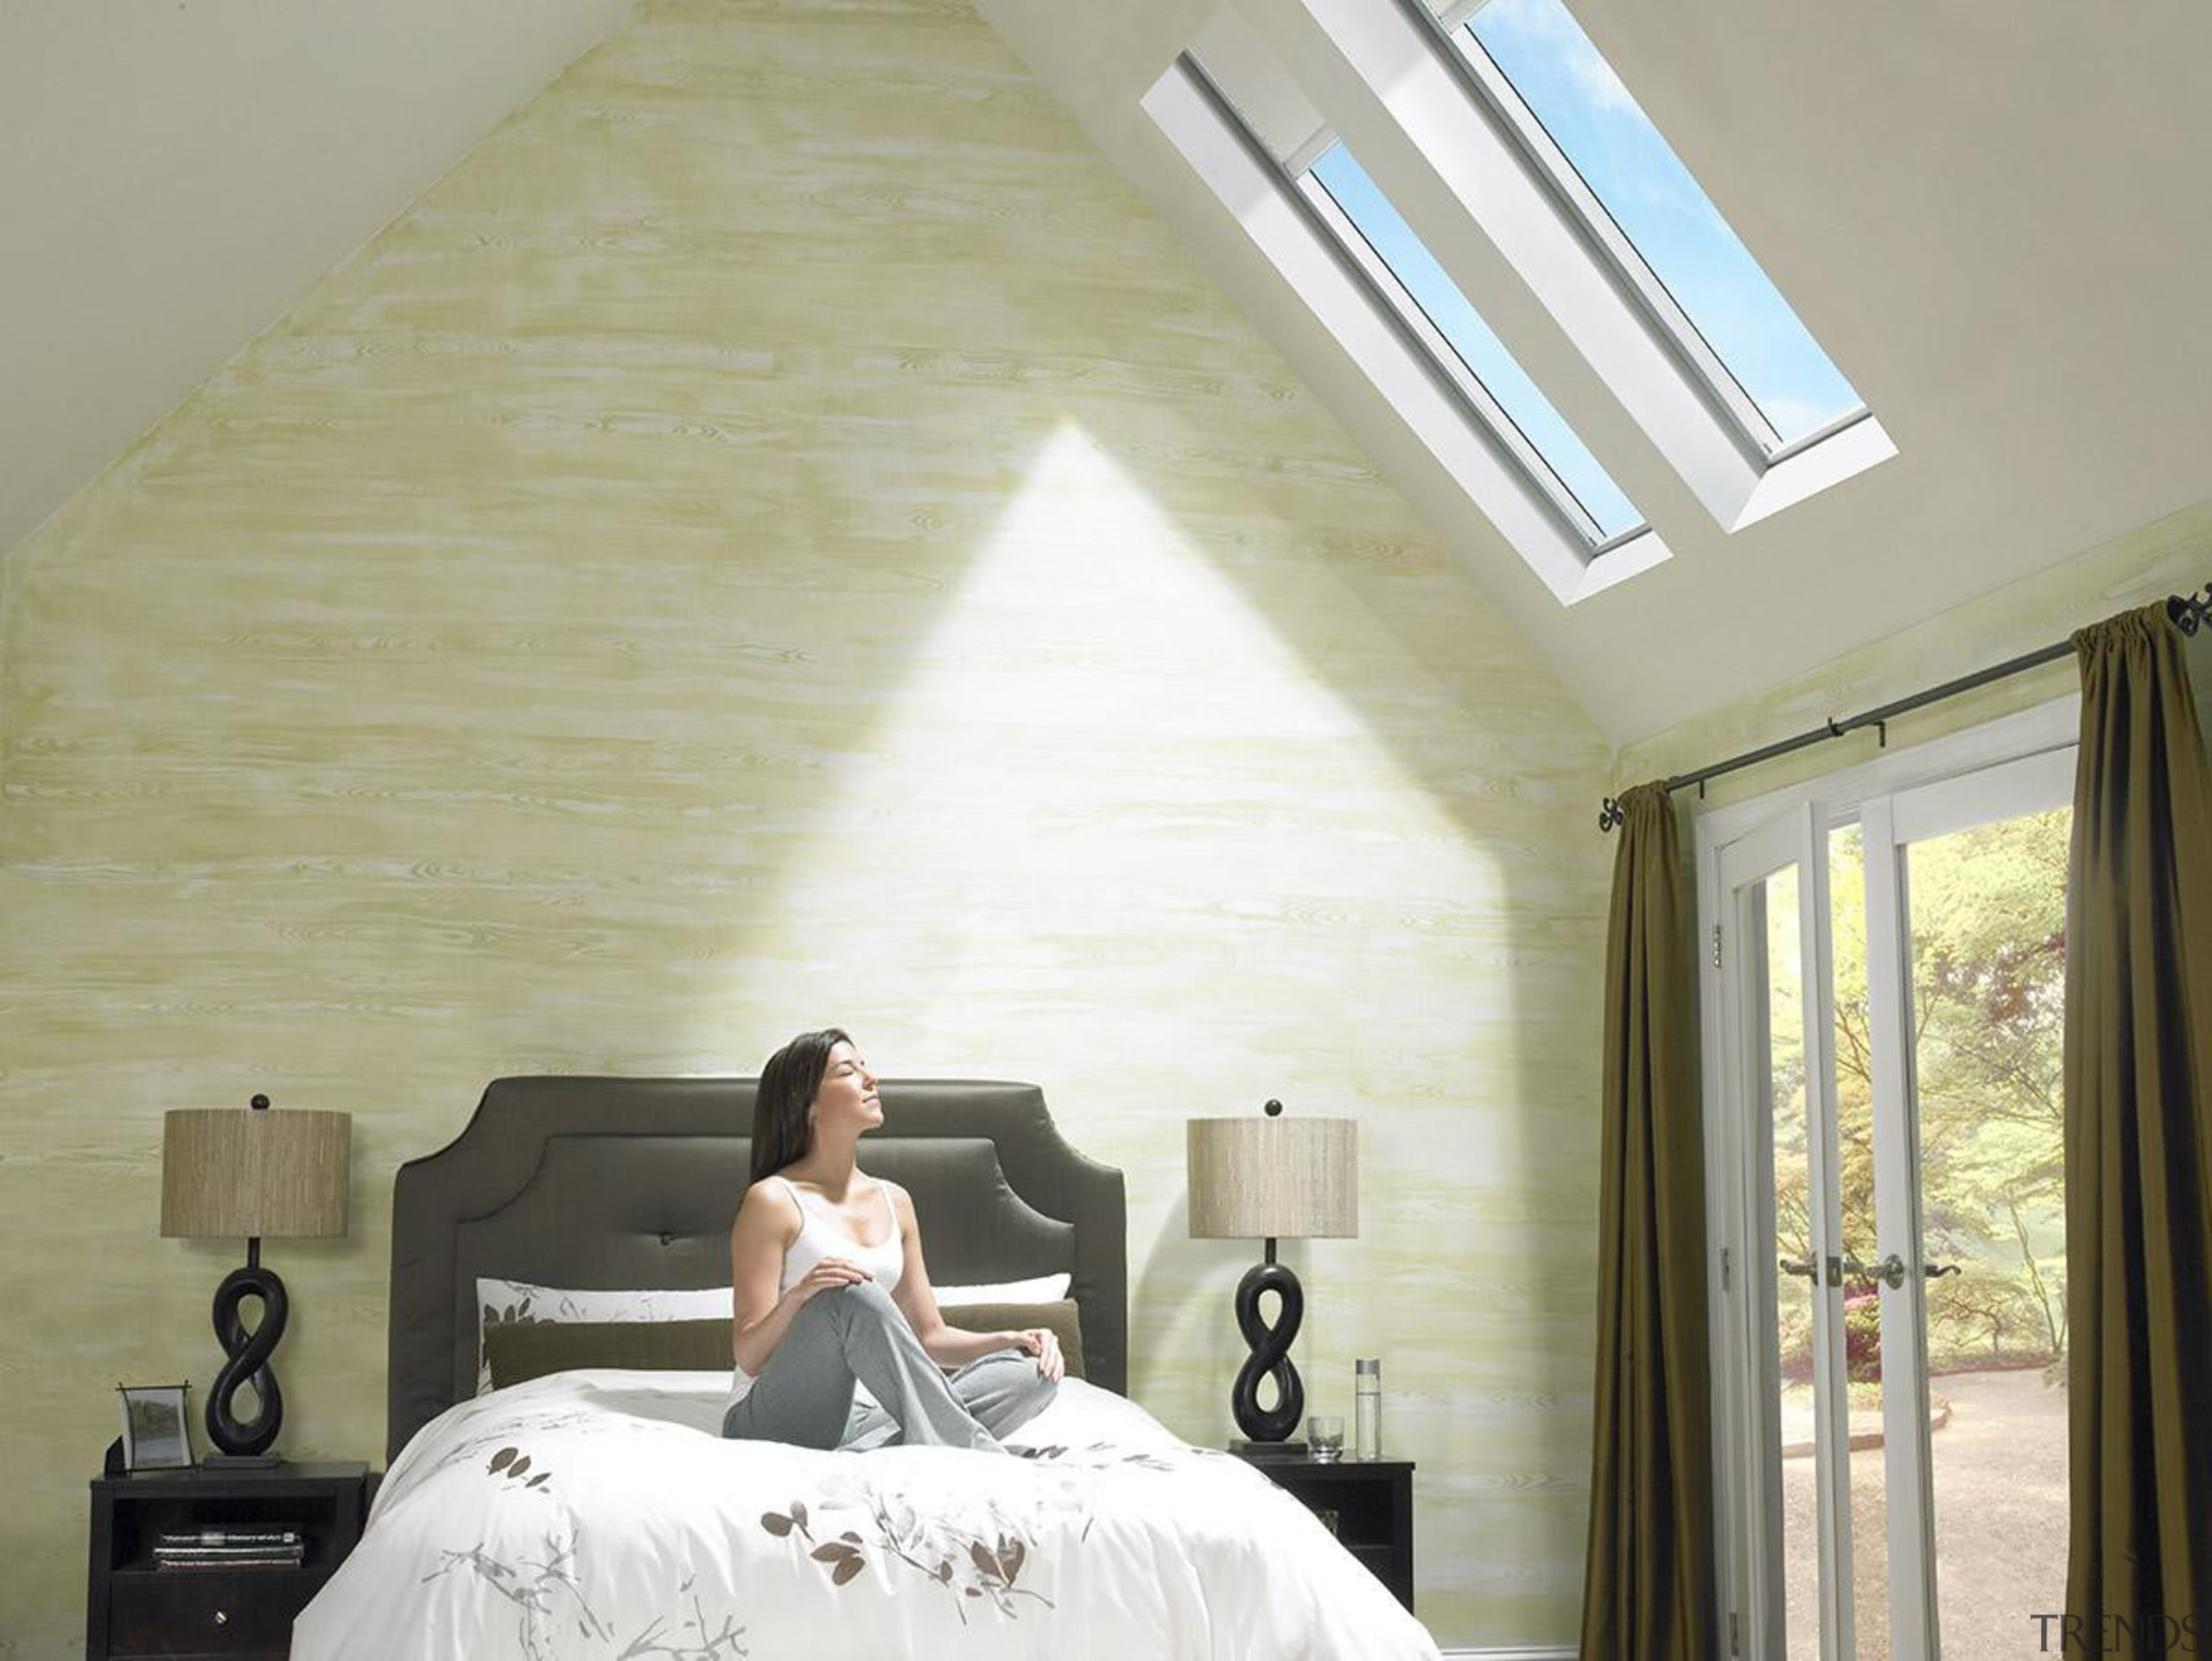 Bringing in natural light and fresh air, skylights bed, bedroom, ceiling, daylighting, floor, furniture, home, house, interior design, lighting, room, wall, window, gray